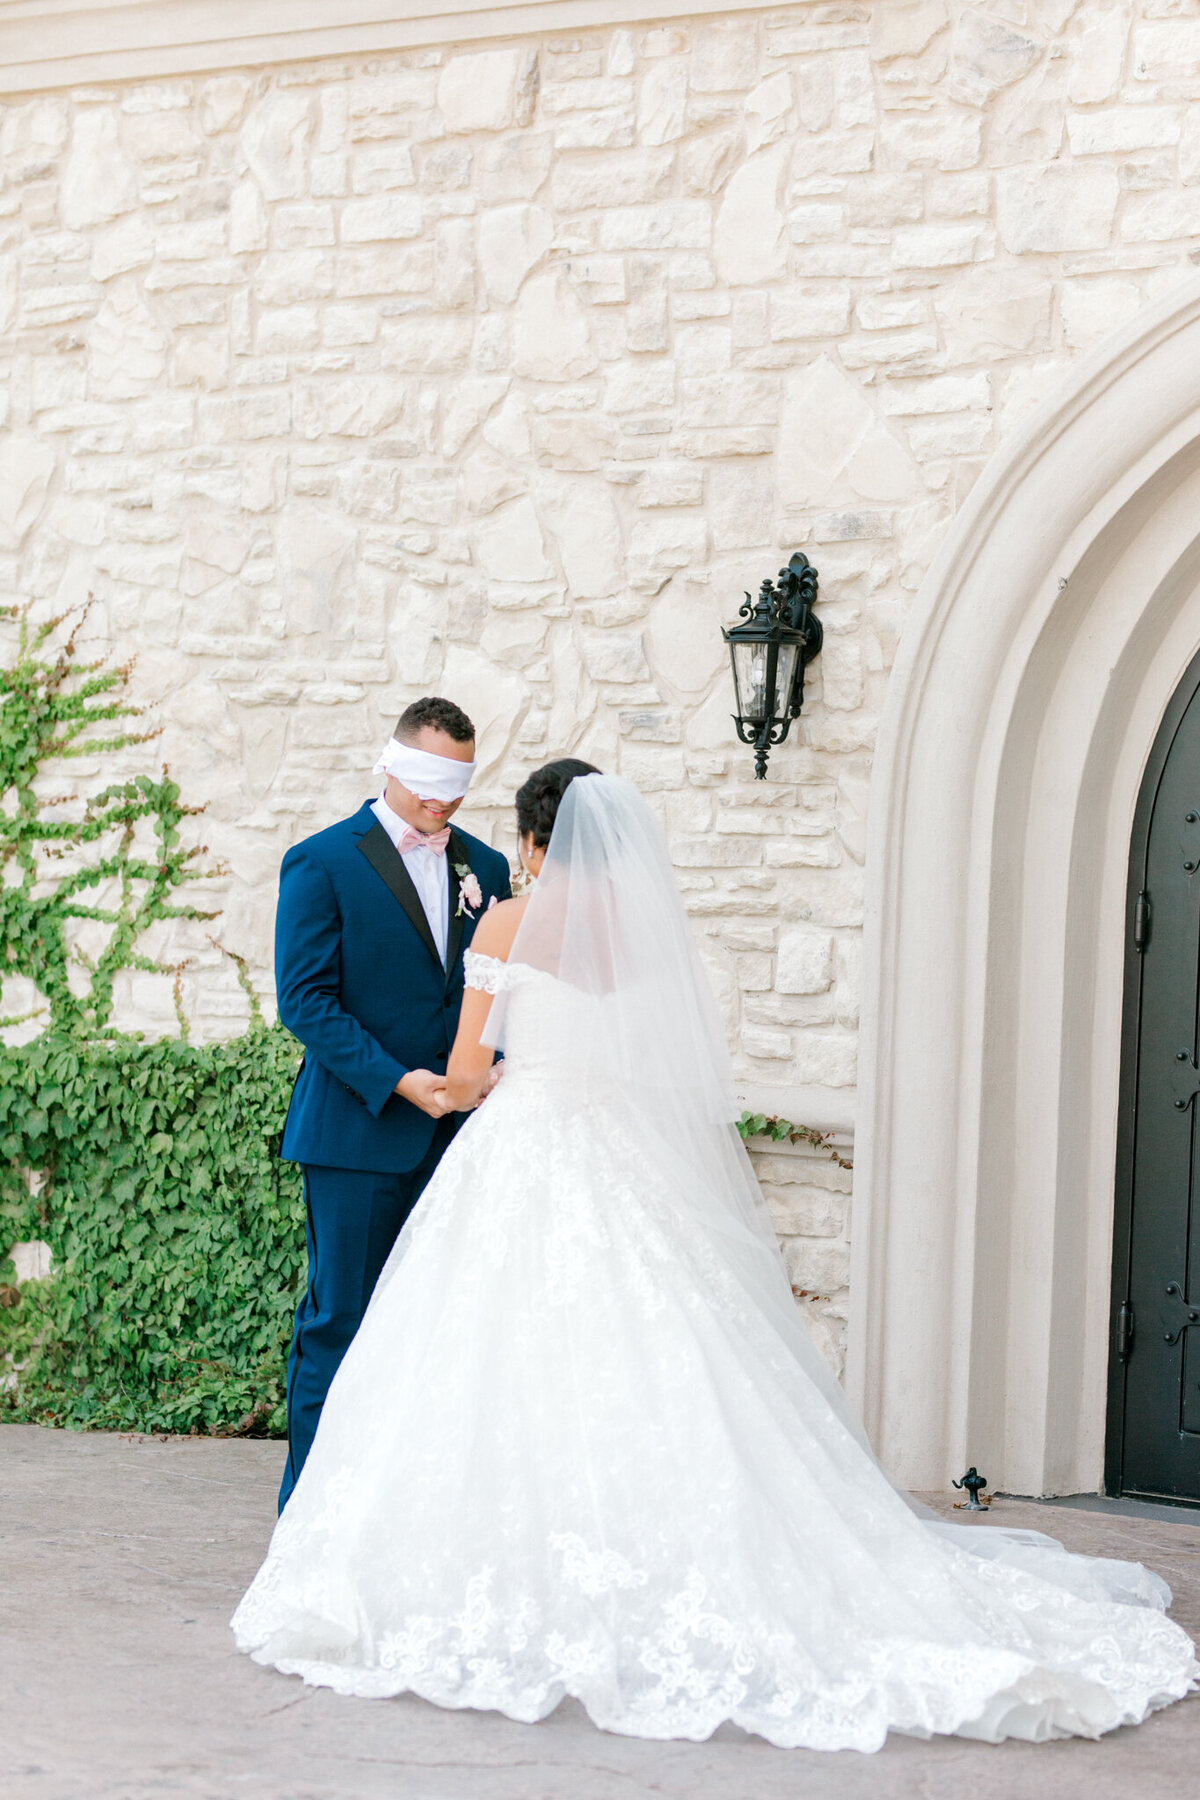 Jasmine & Josh Wedding at Knotting Hill Place | Dallas DFW Wedding Photographer | Sami Kathryn Photography-26